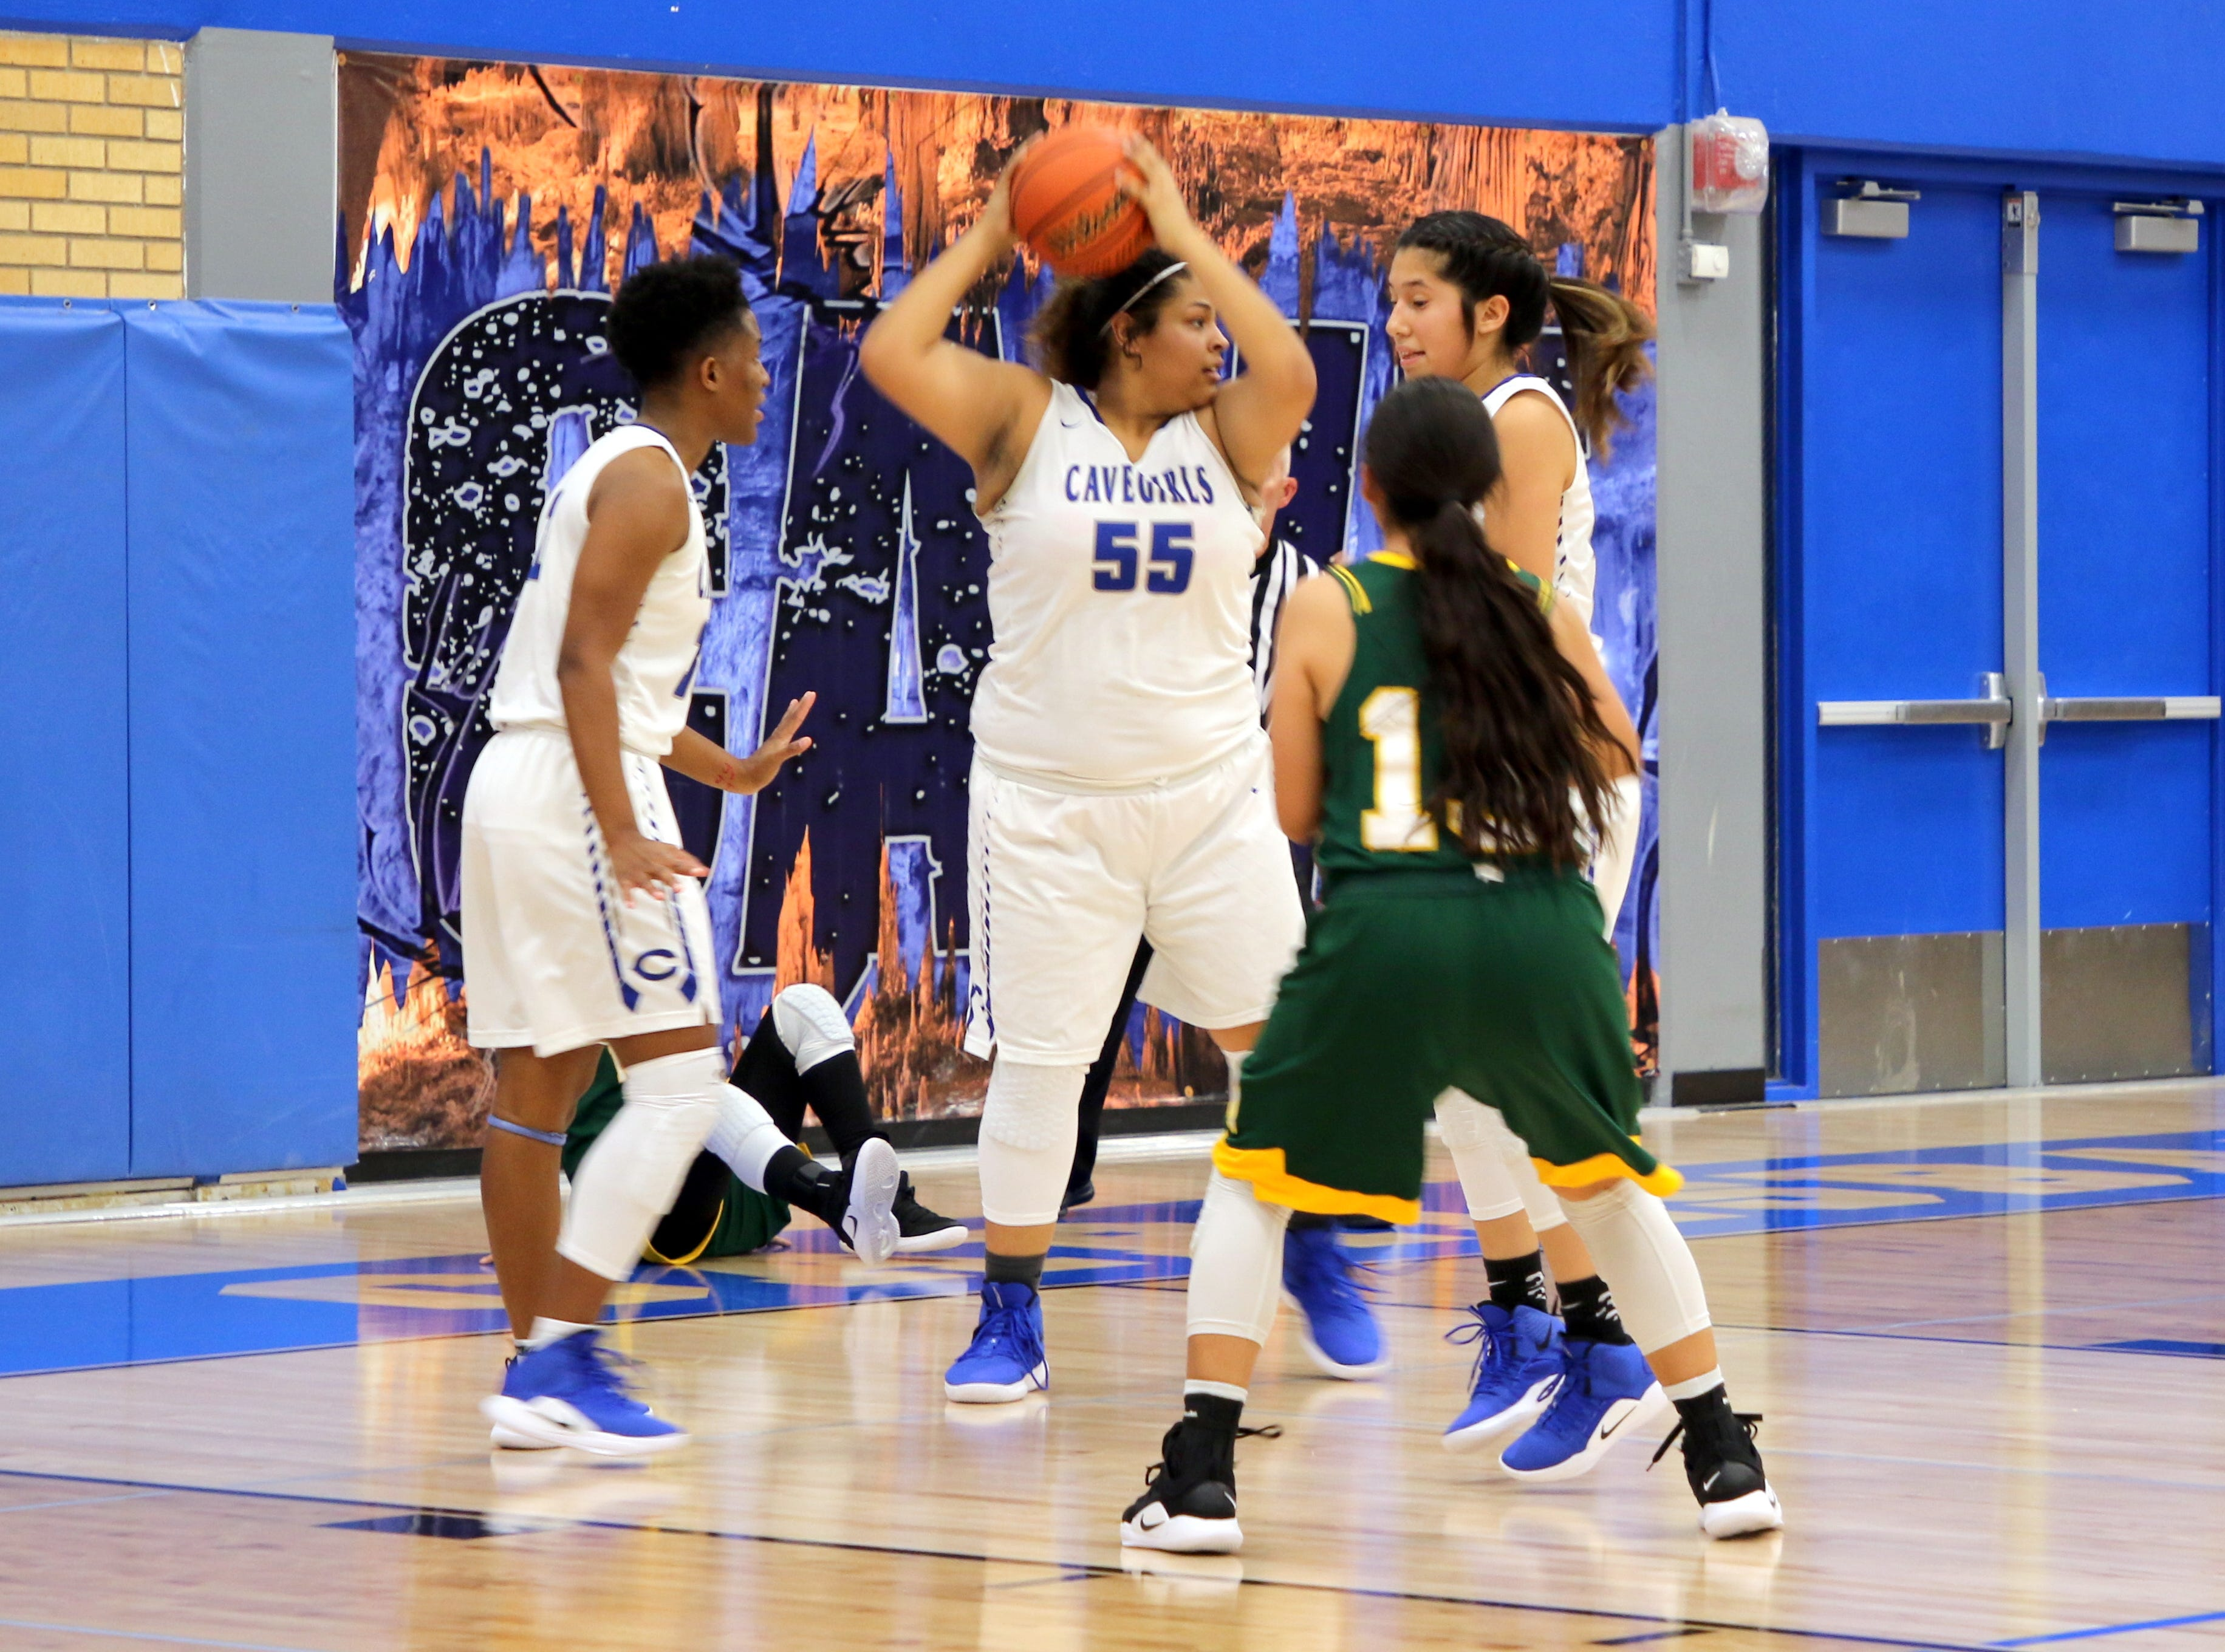 Carlsbad's Kaliyah Montoya (55) pulls down a rebound in the second half of Friday's game against Mayfield.